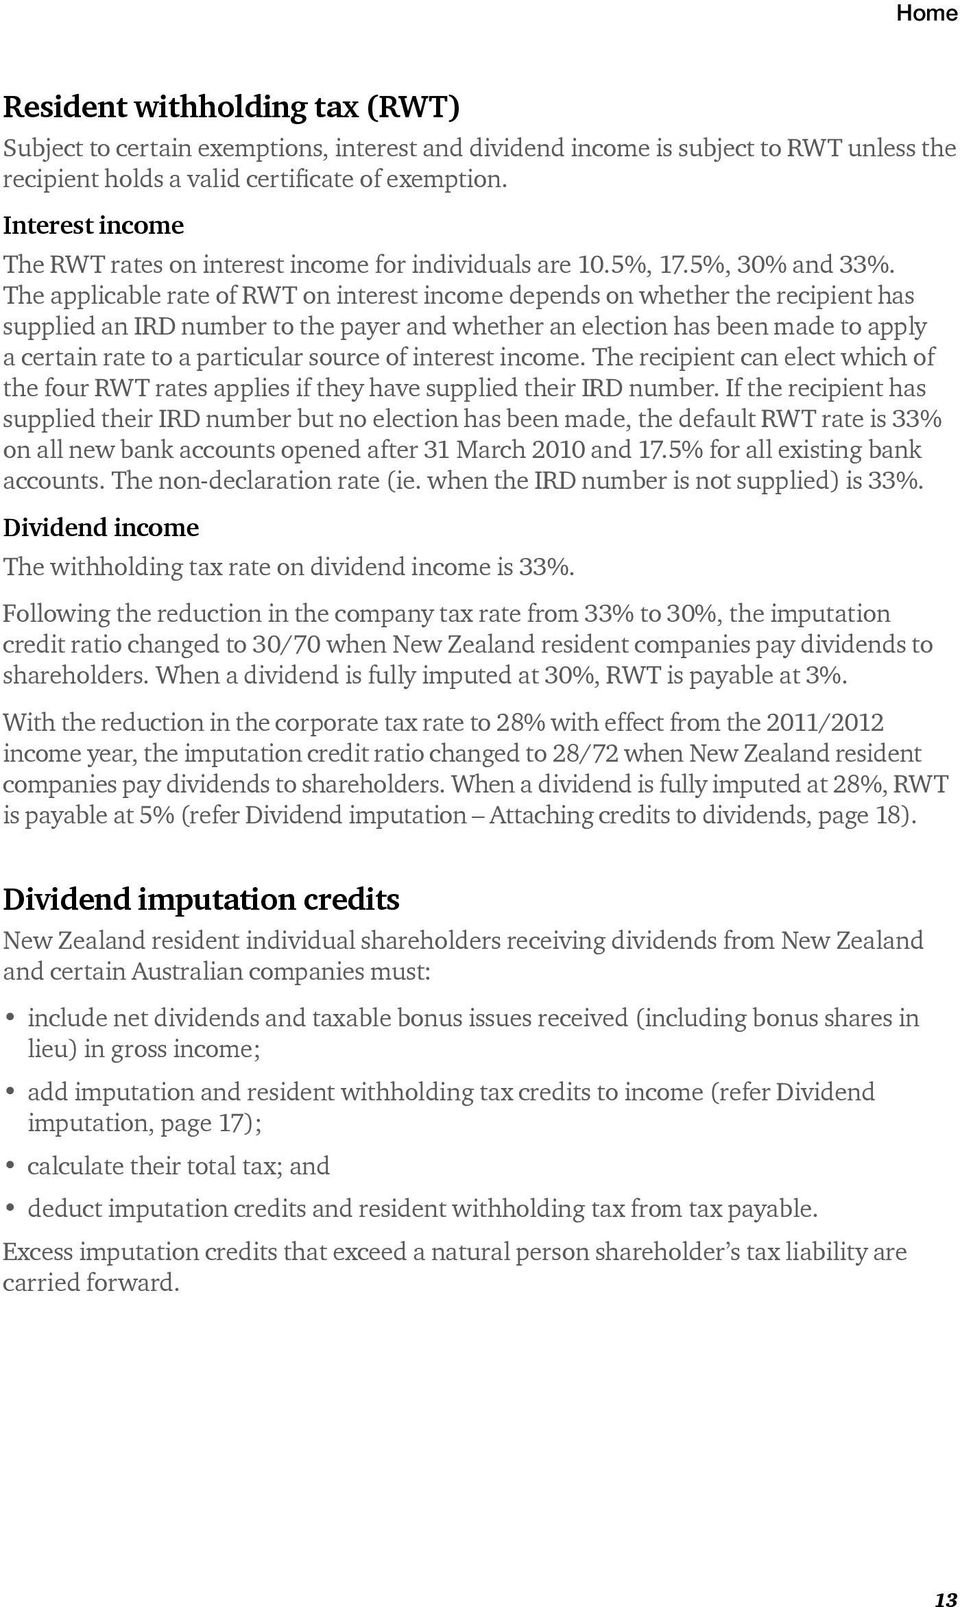 The applicable rate of RWT on interest income depends on whether the recipient has supplied an IRD number to the payer and whether an election has been made to apply a certain rate to a particular